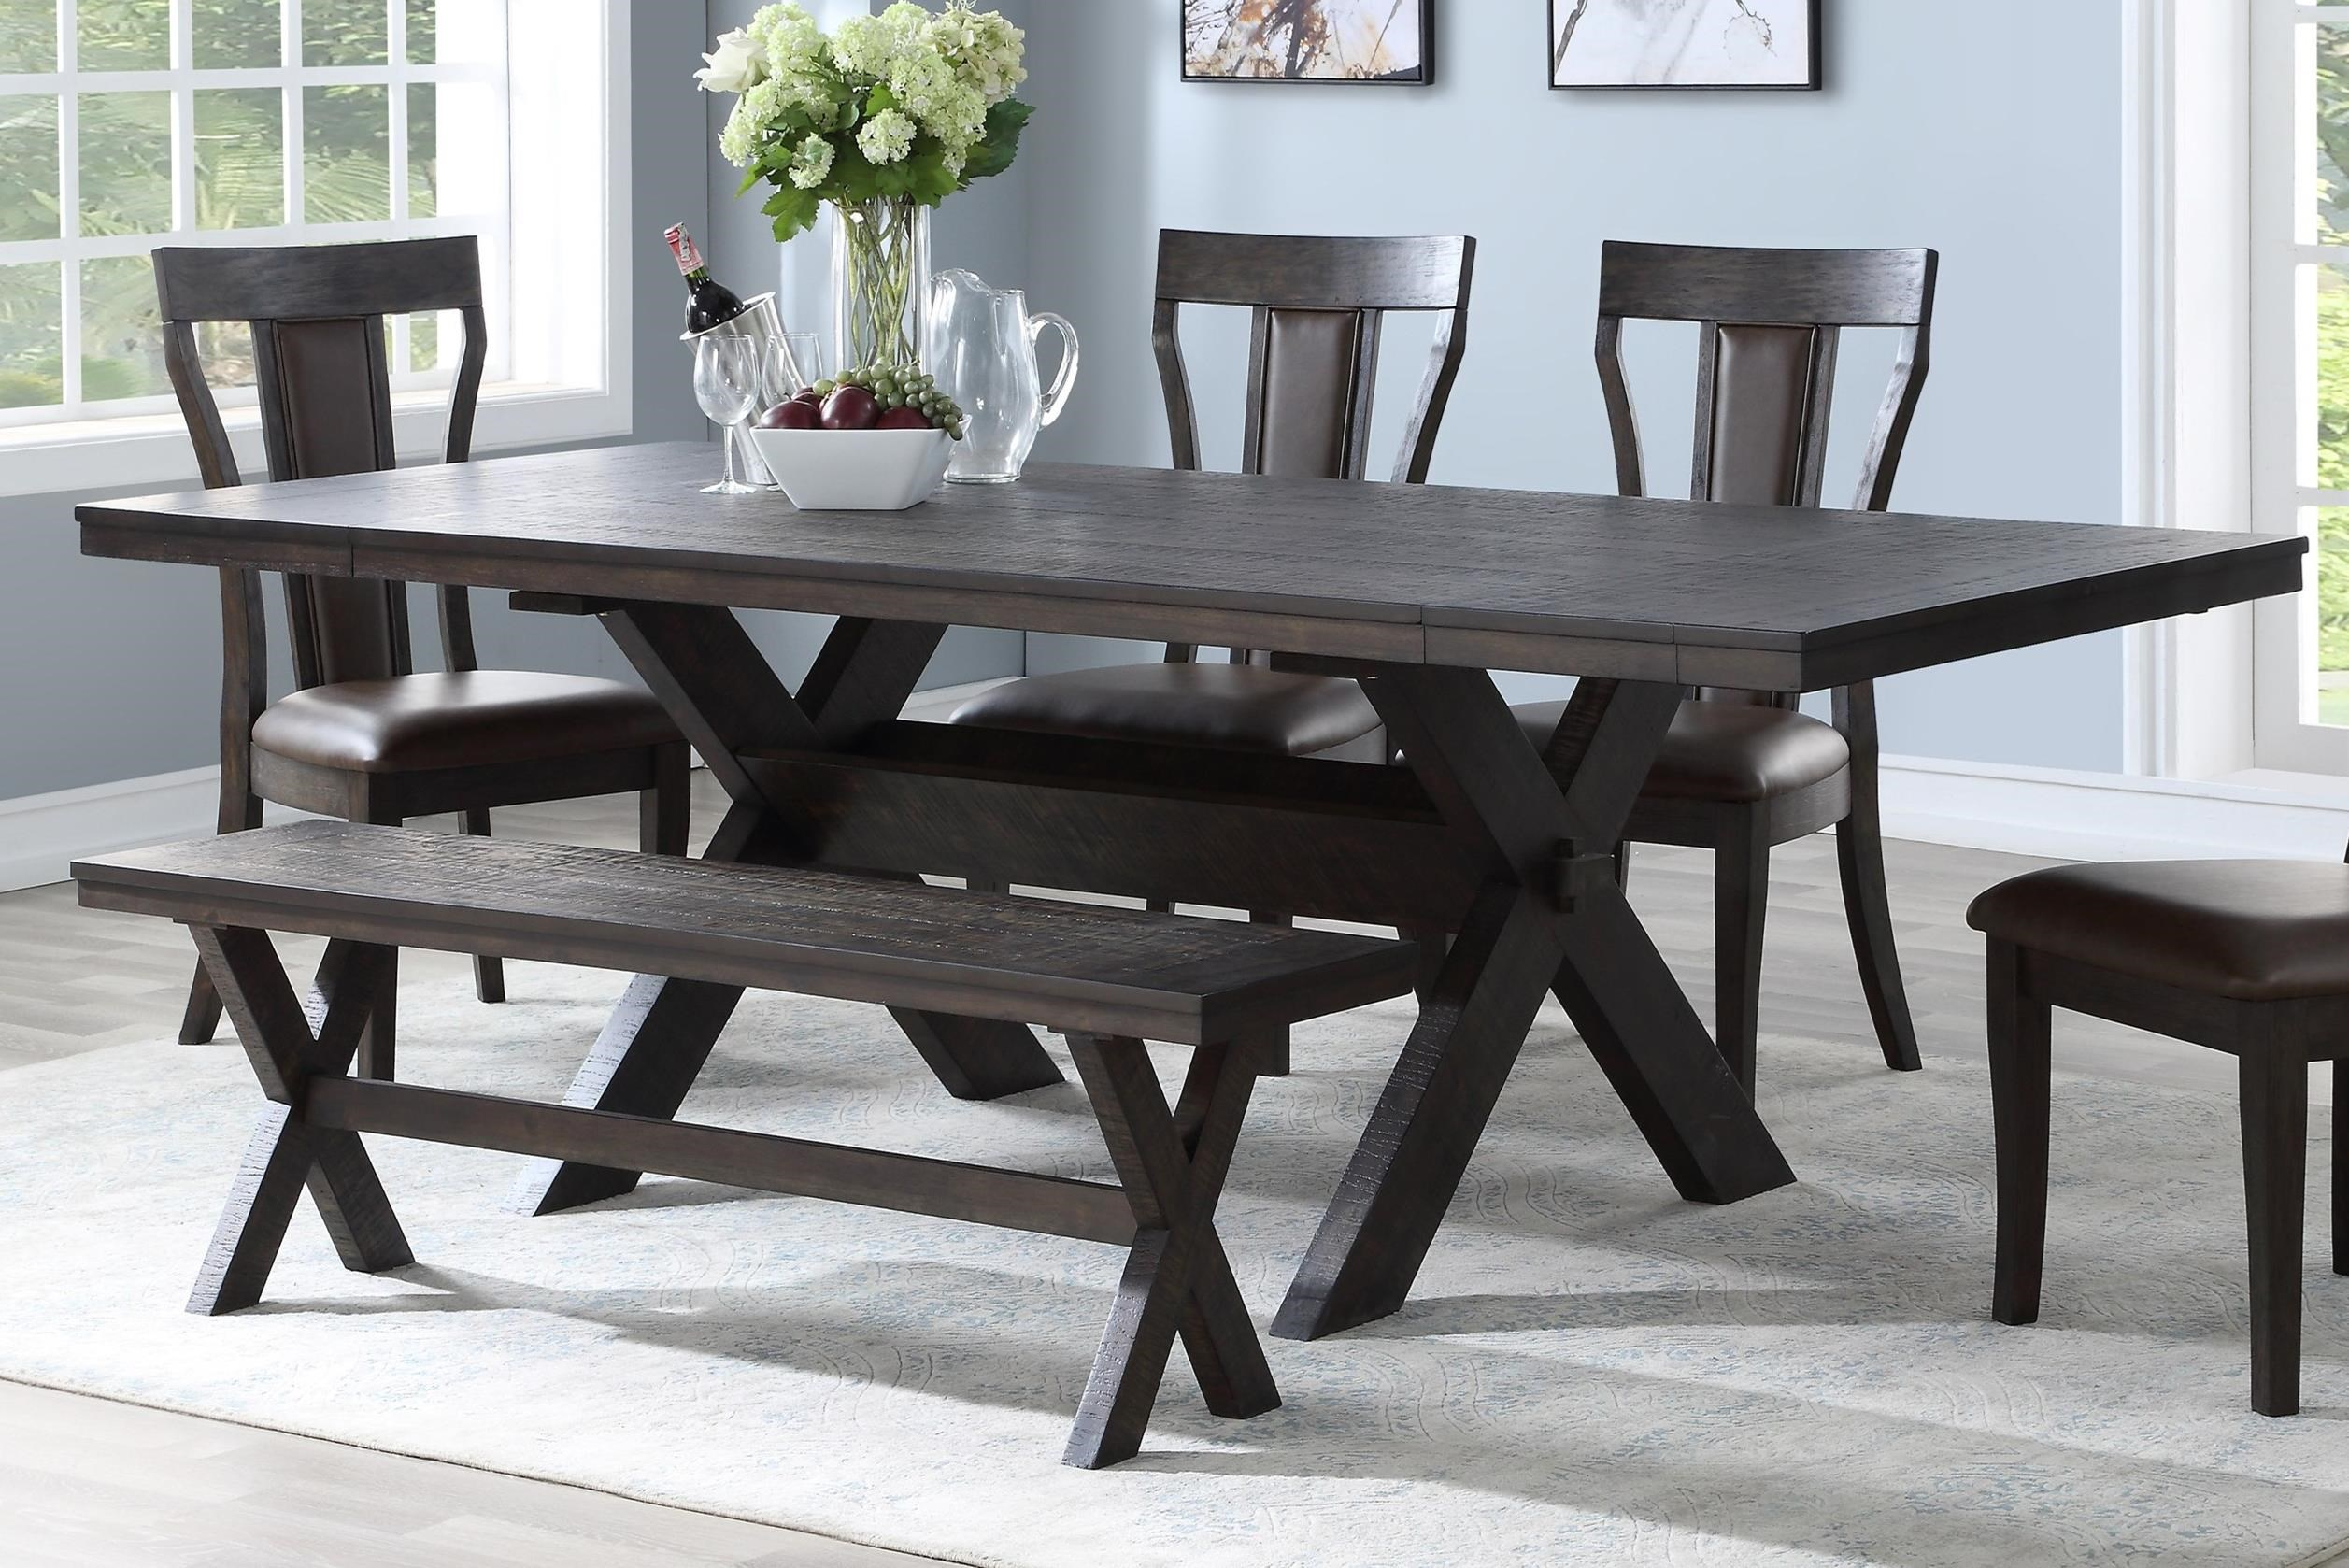 Aubree Dining Table by New Classic at Carolina Direct